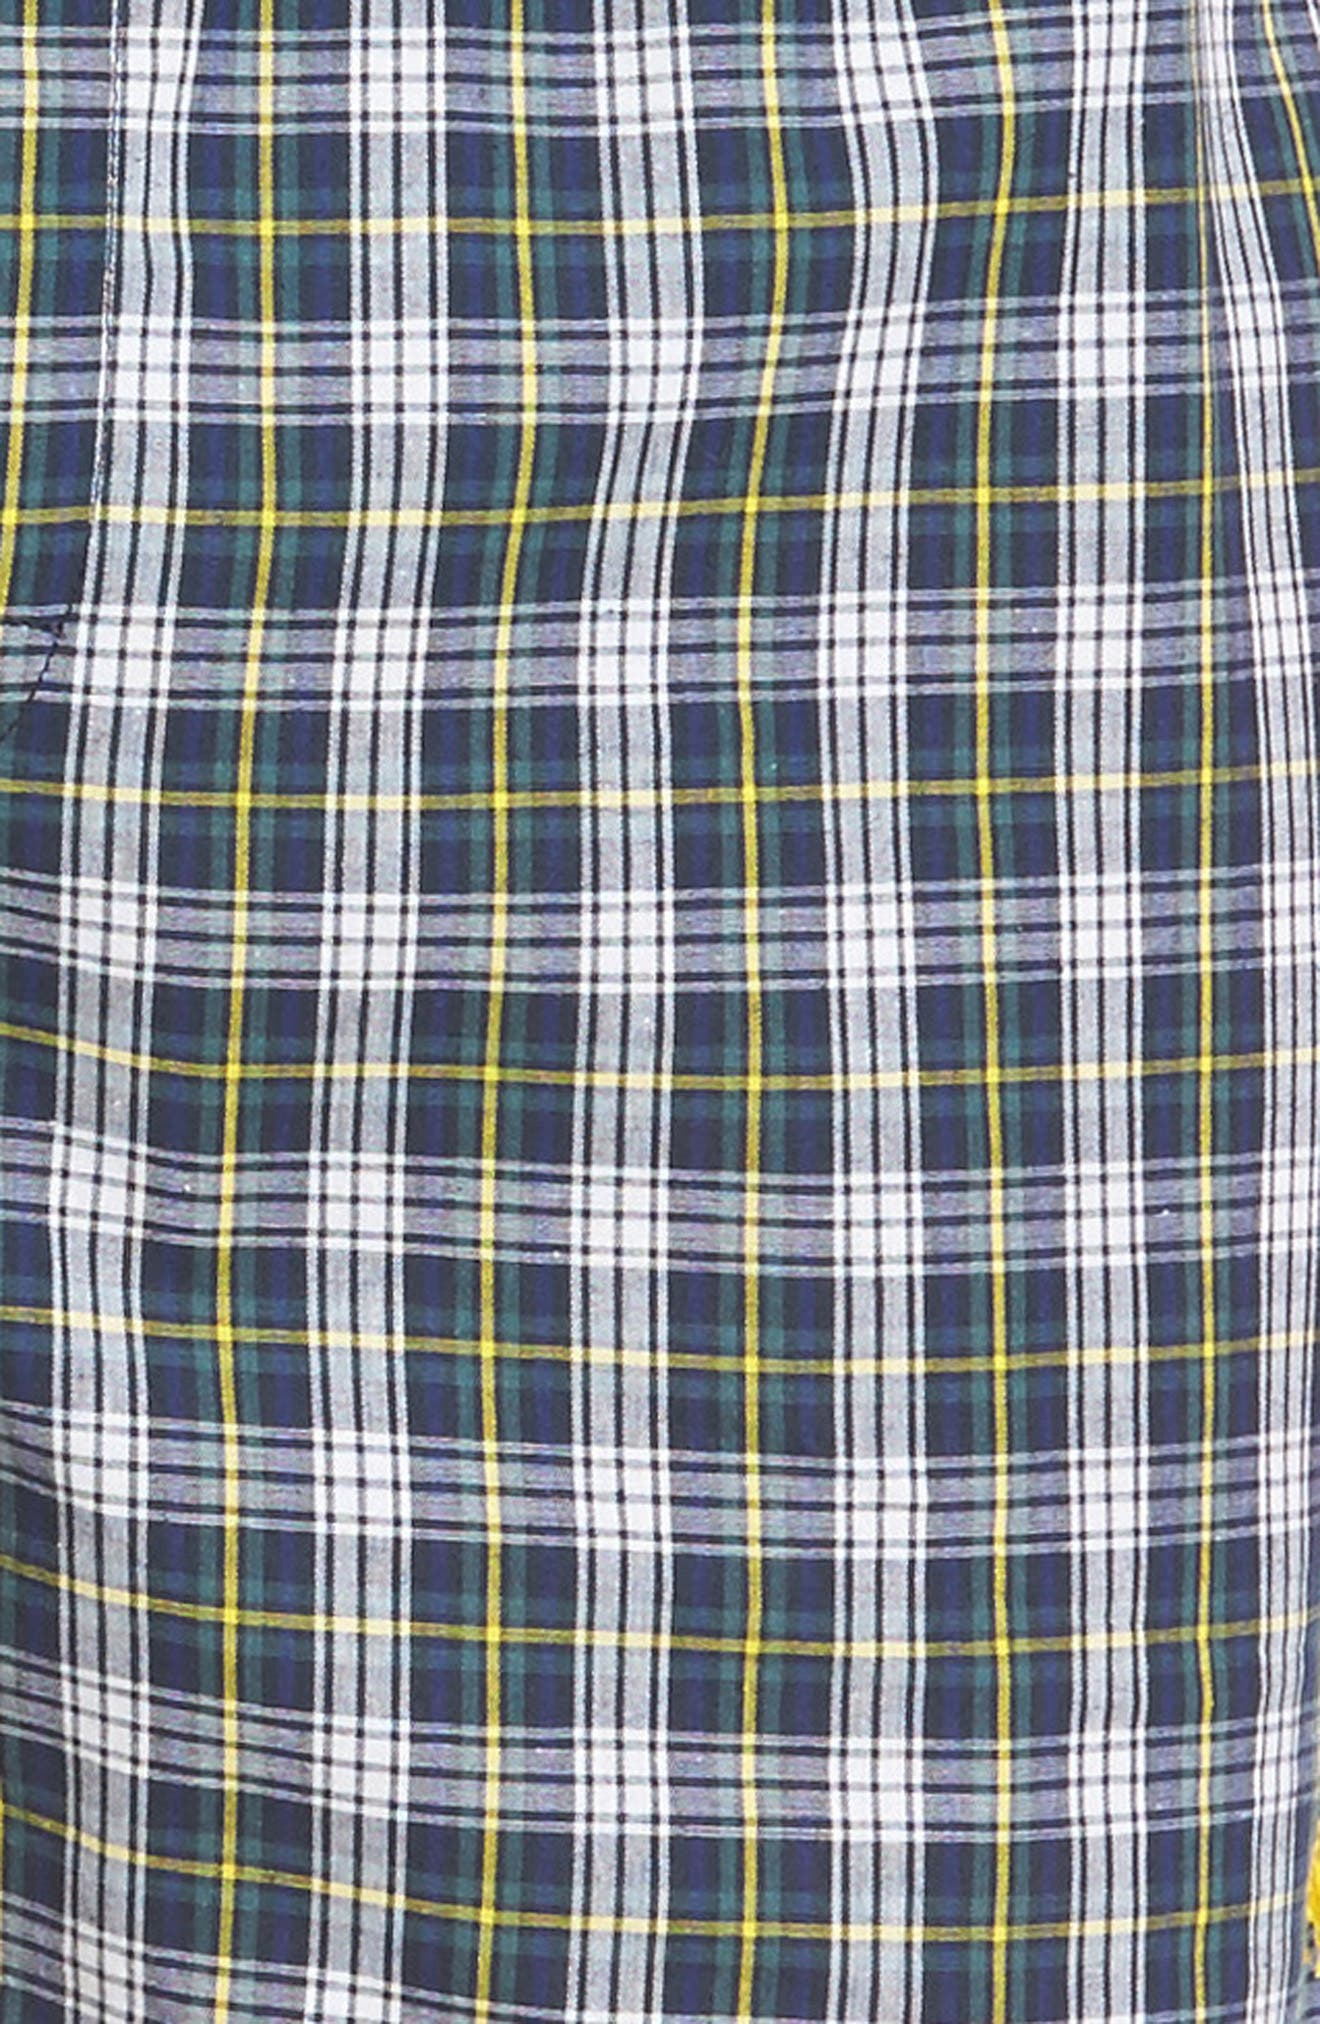 Assorted 3-Pack Woven Cotton Boxers,                             Alternate thumbnail 5, color,                             Blue/ Green Plaid/ Navy Plaid